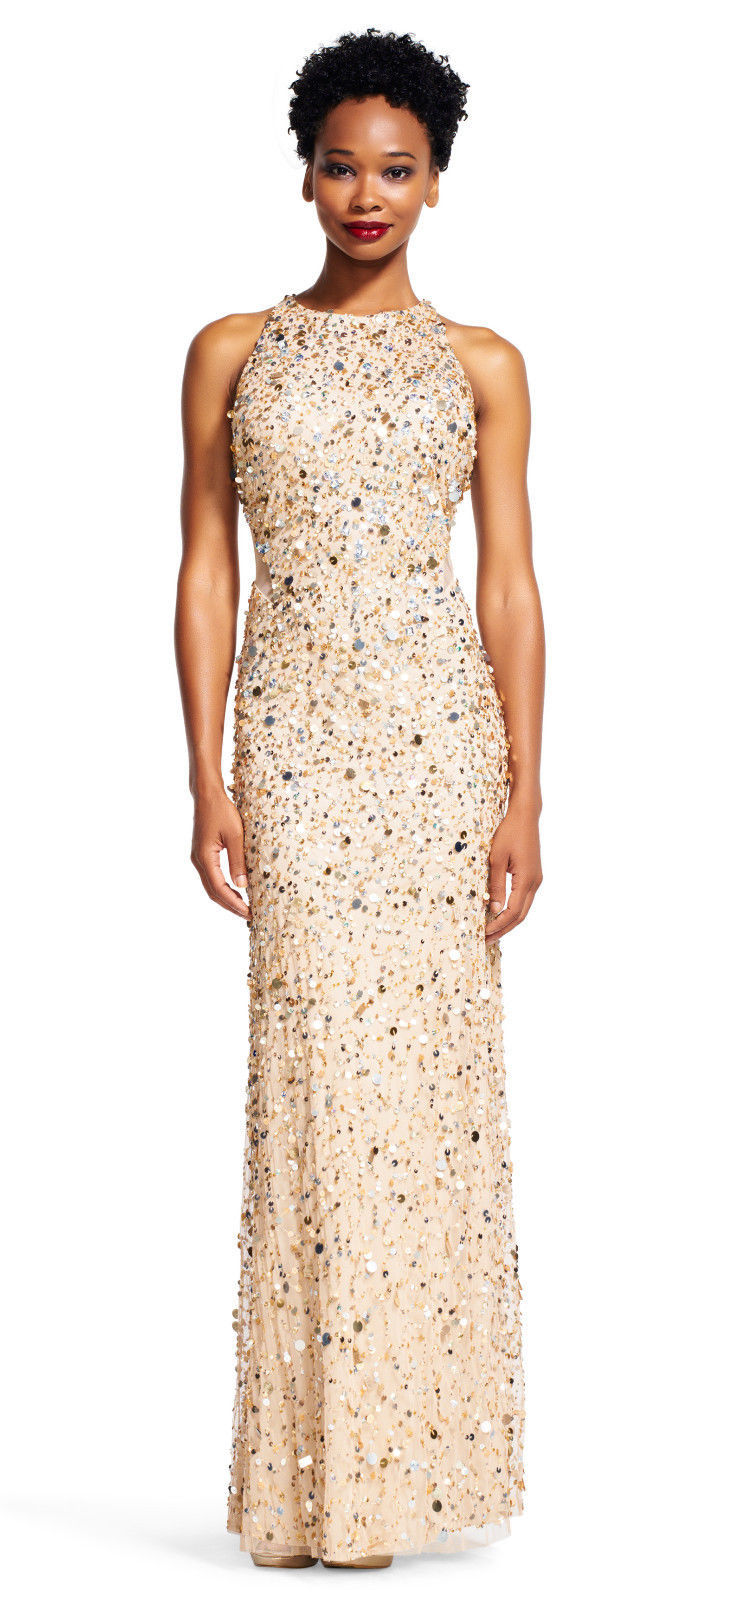 Adrianna Papell Dress: 2 customer reviews and 246 listings